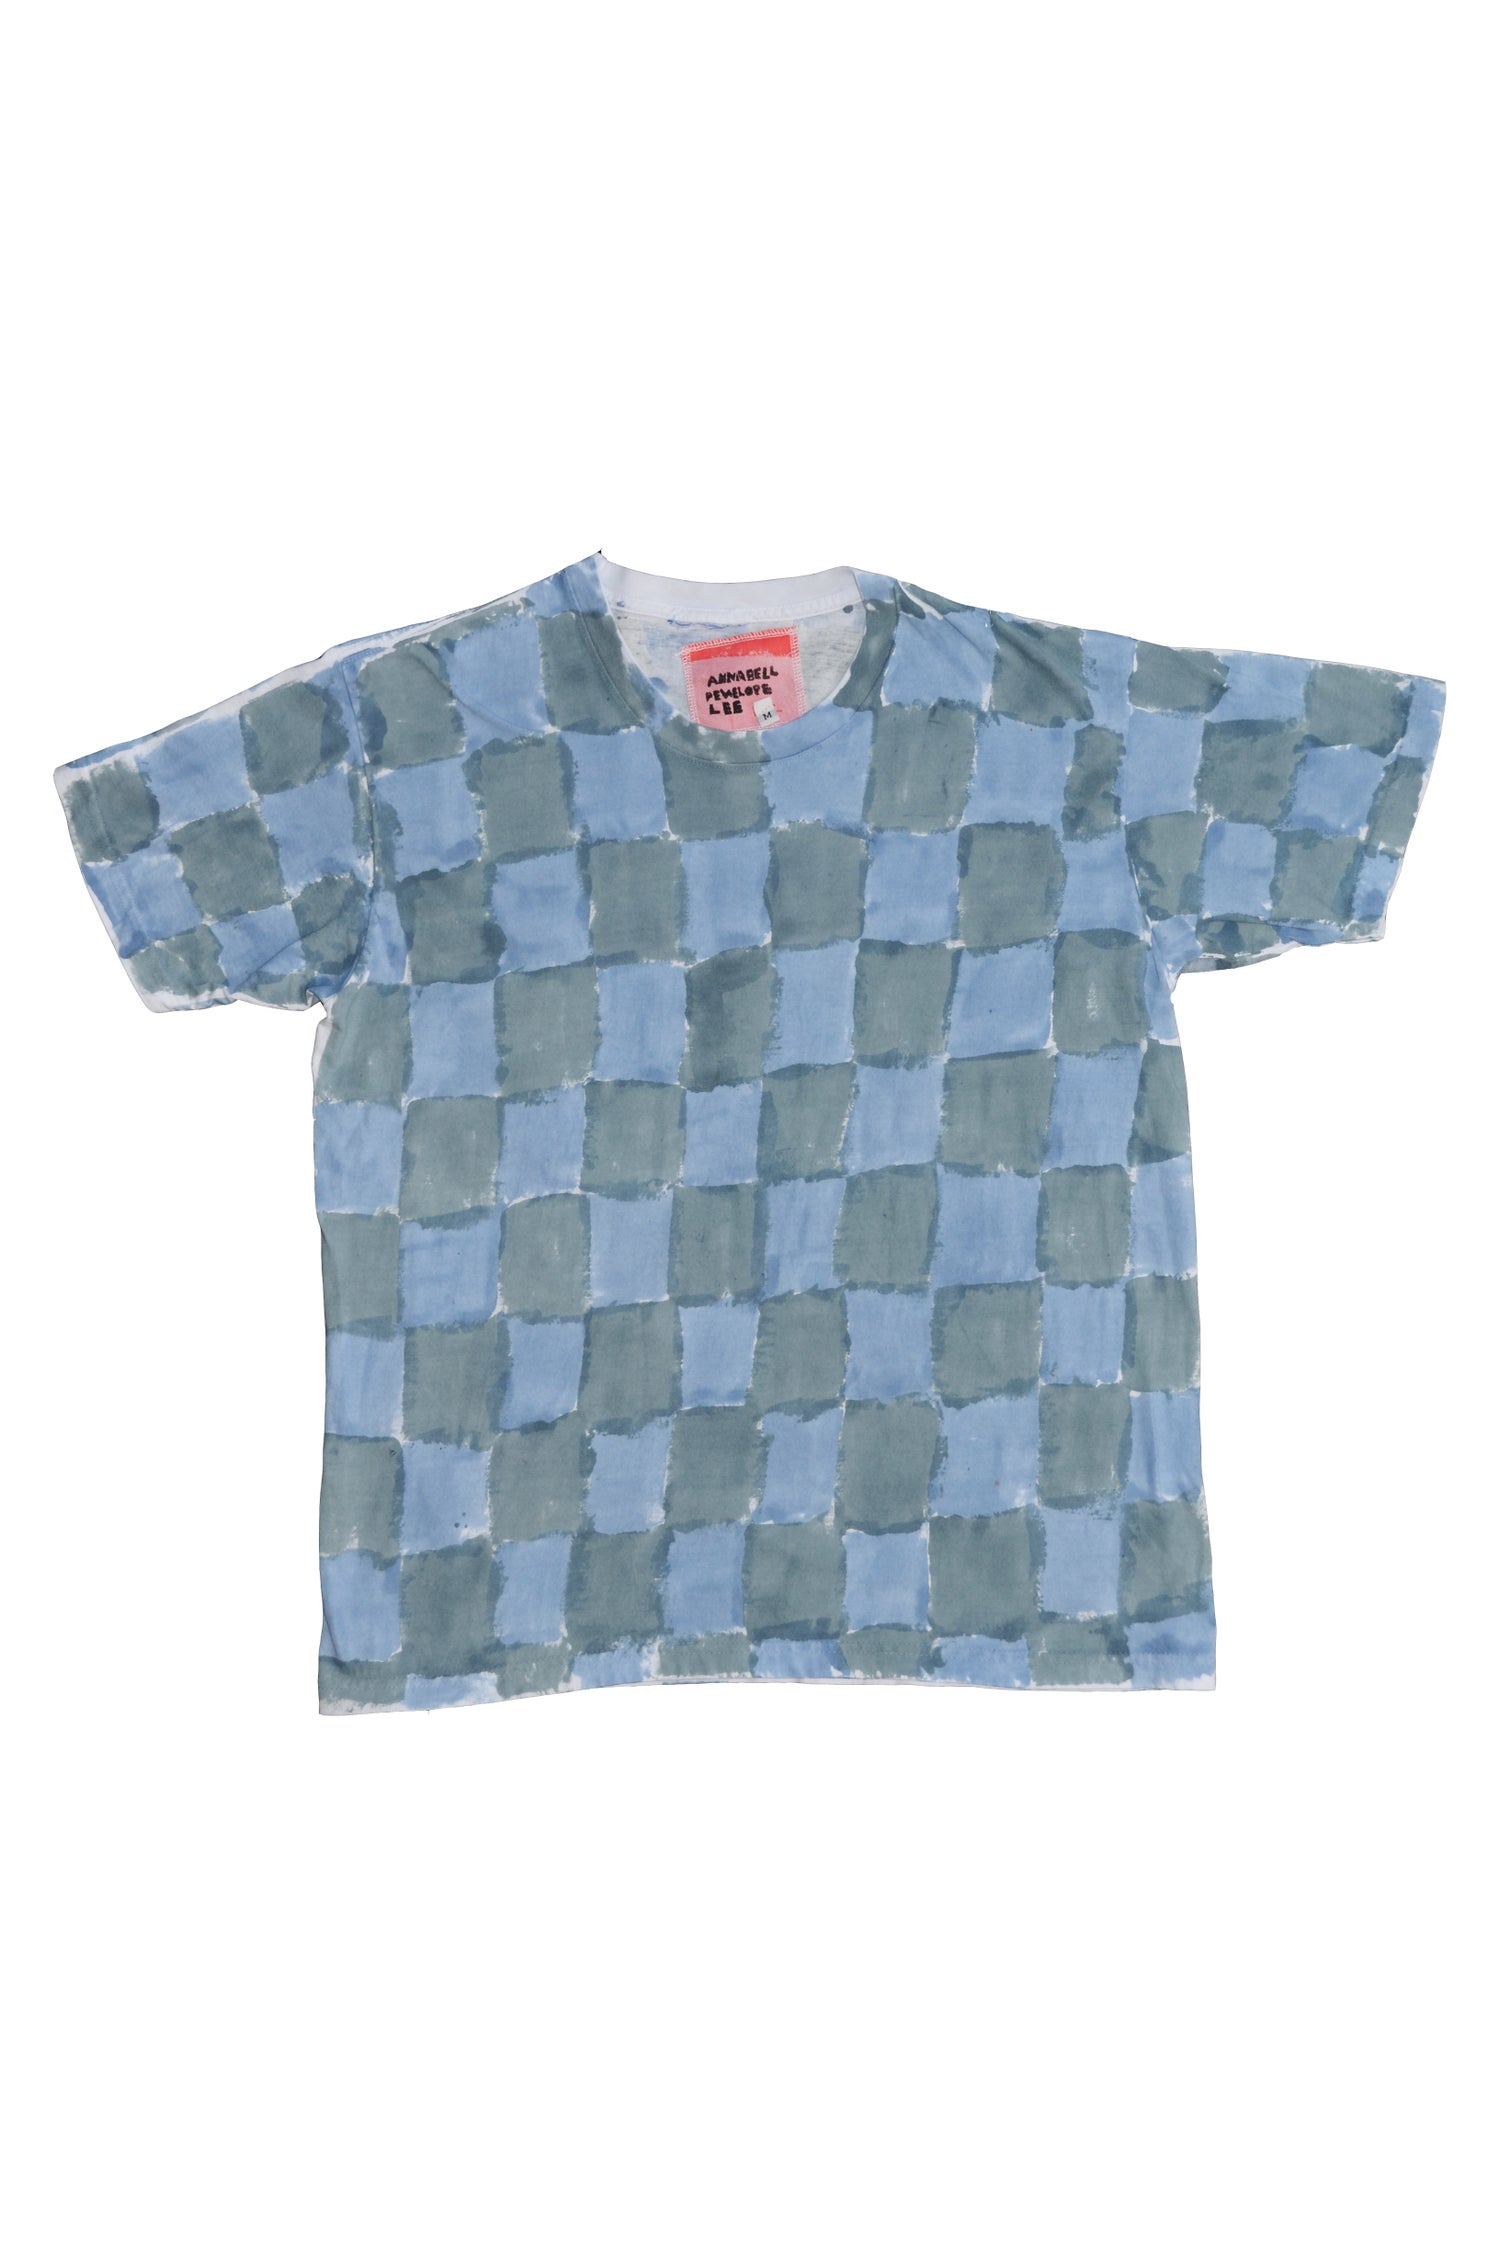 Image of blue and grey M/L